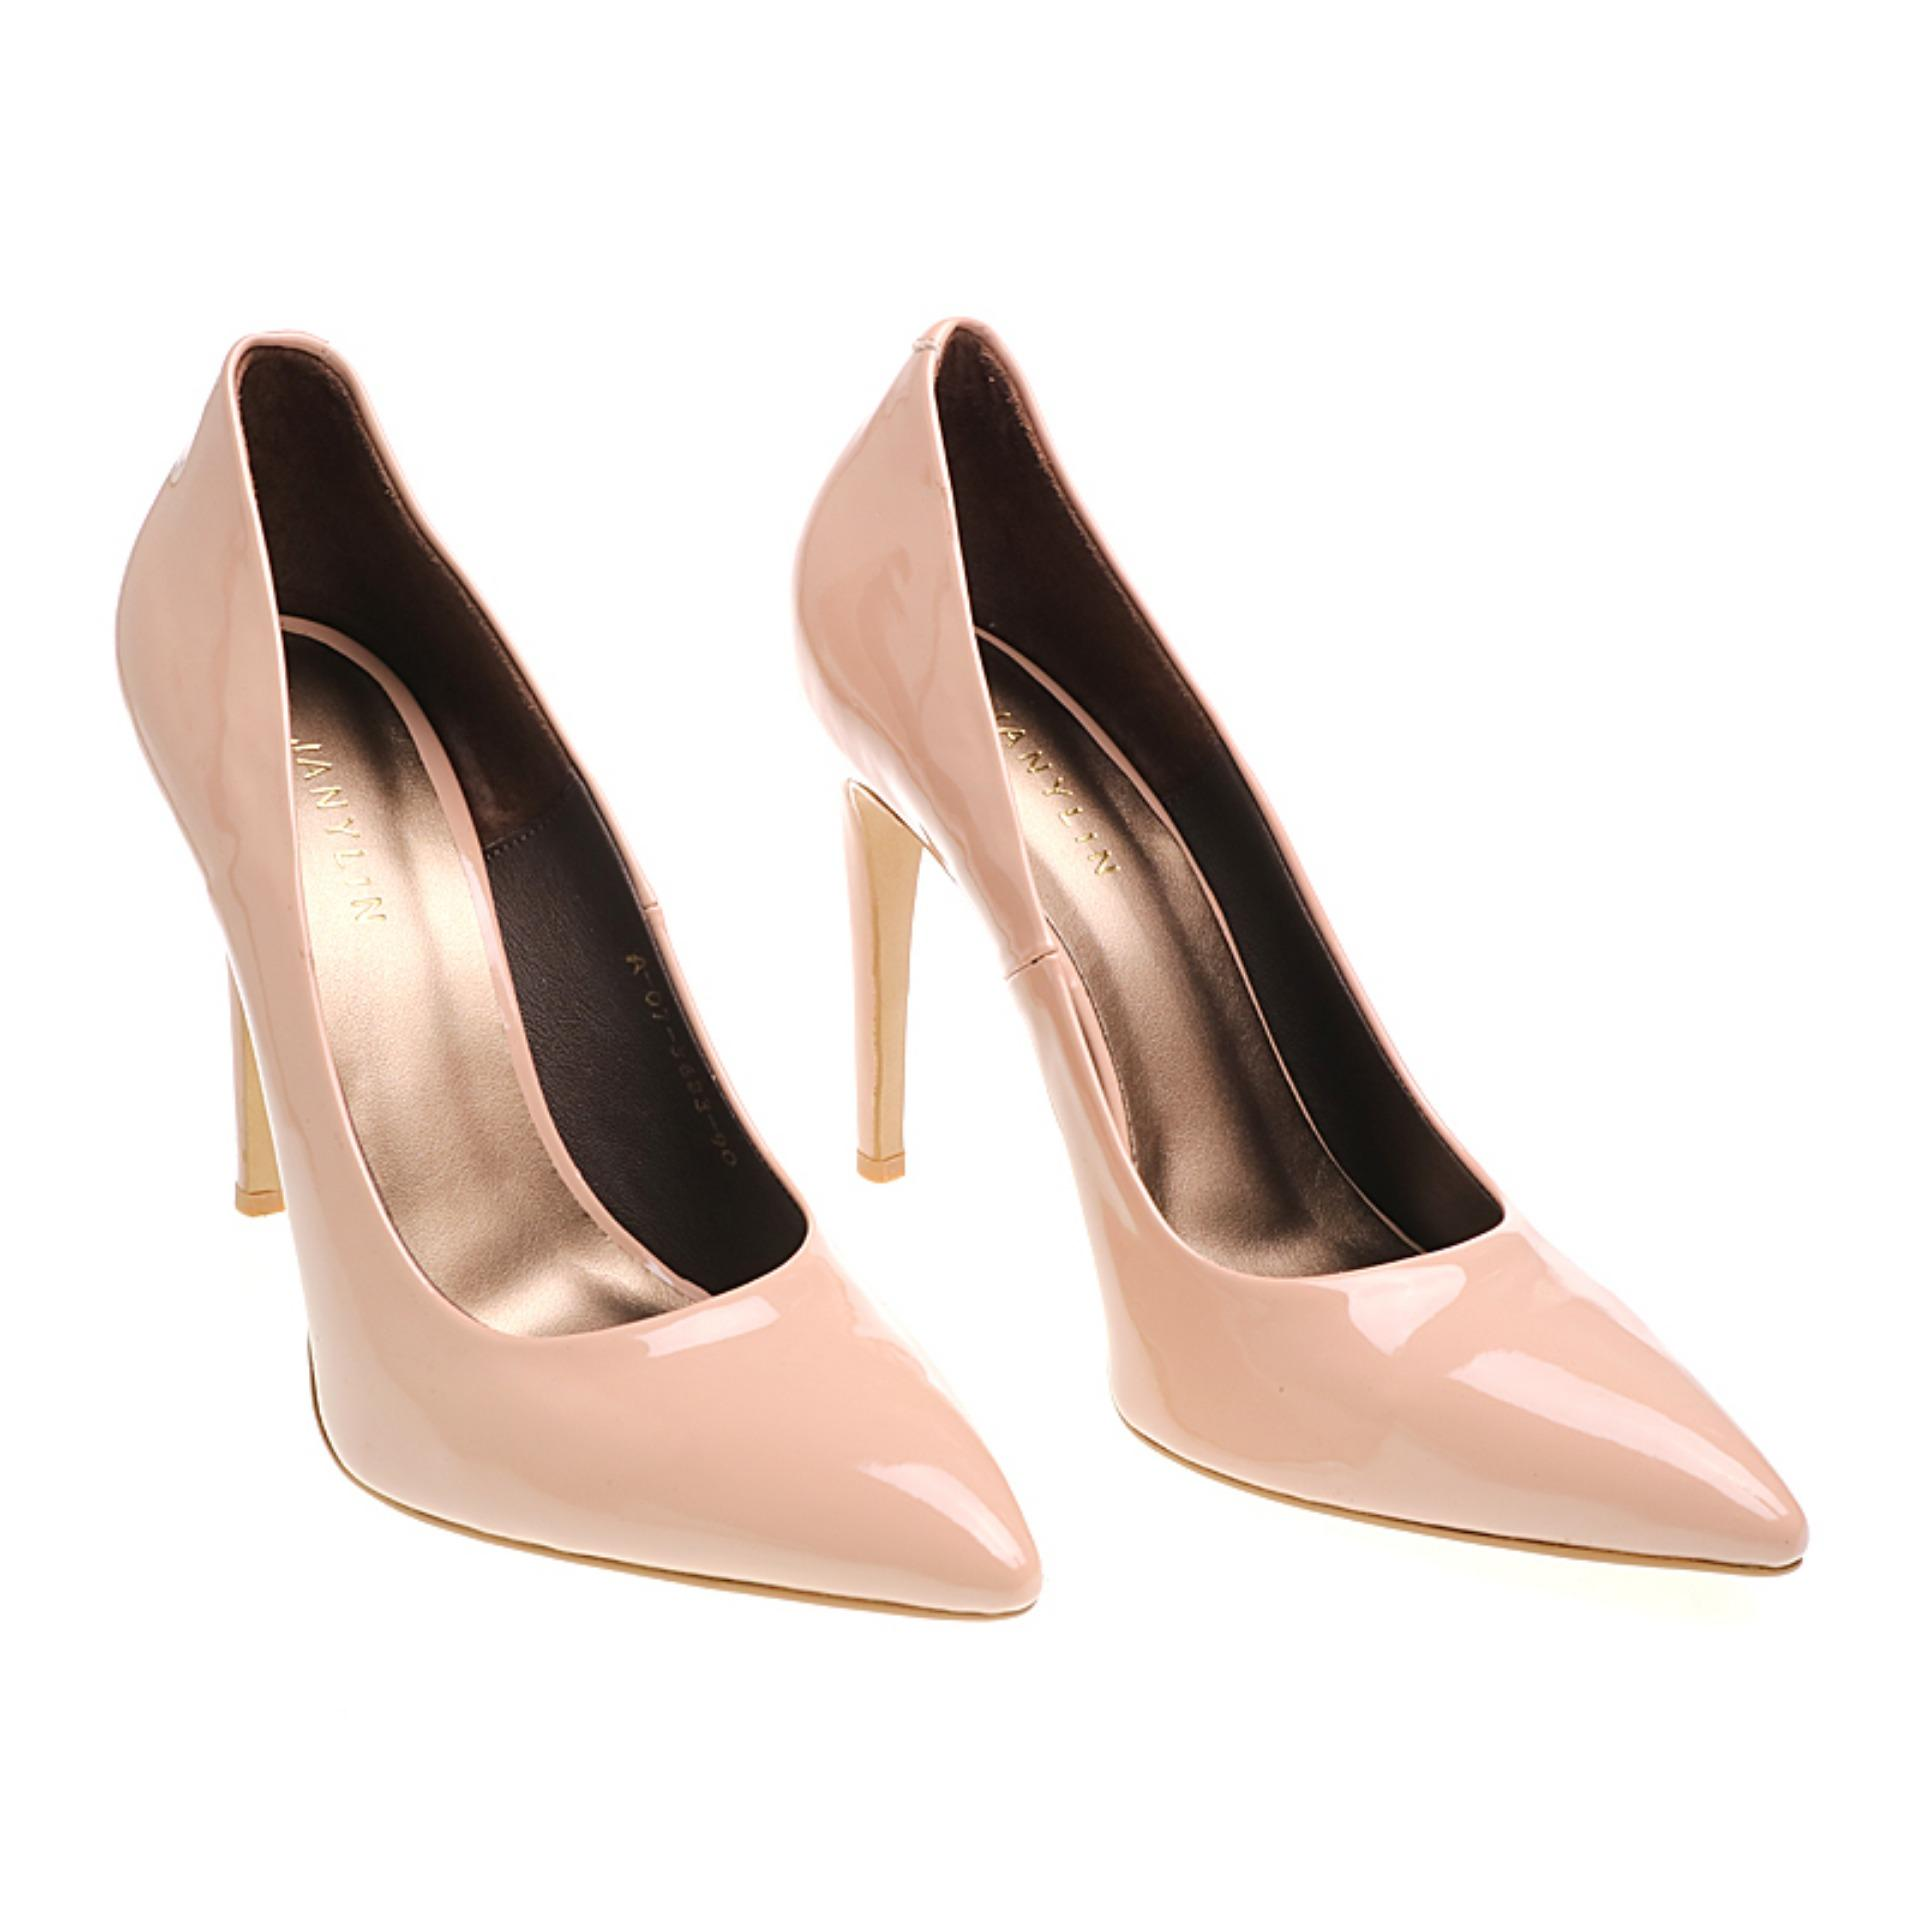 Janylin Patent Pointed High Heel Pumps (Nude) | Lazada PH